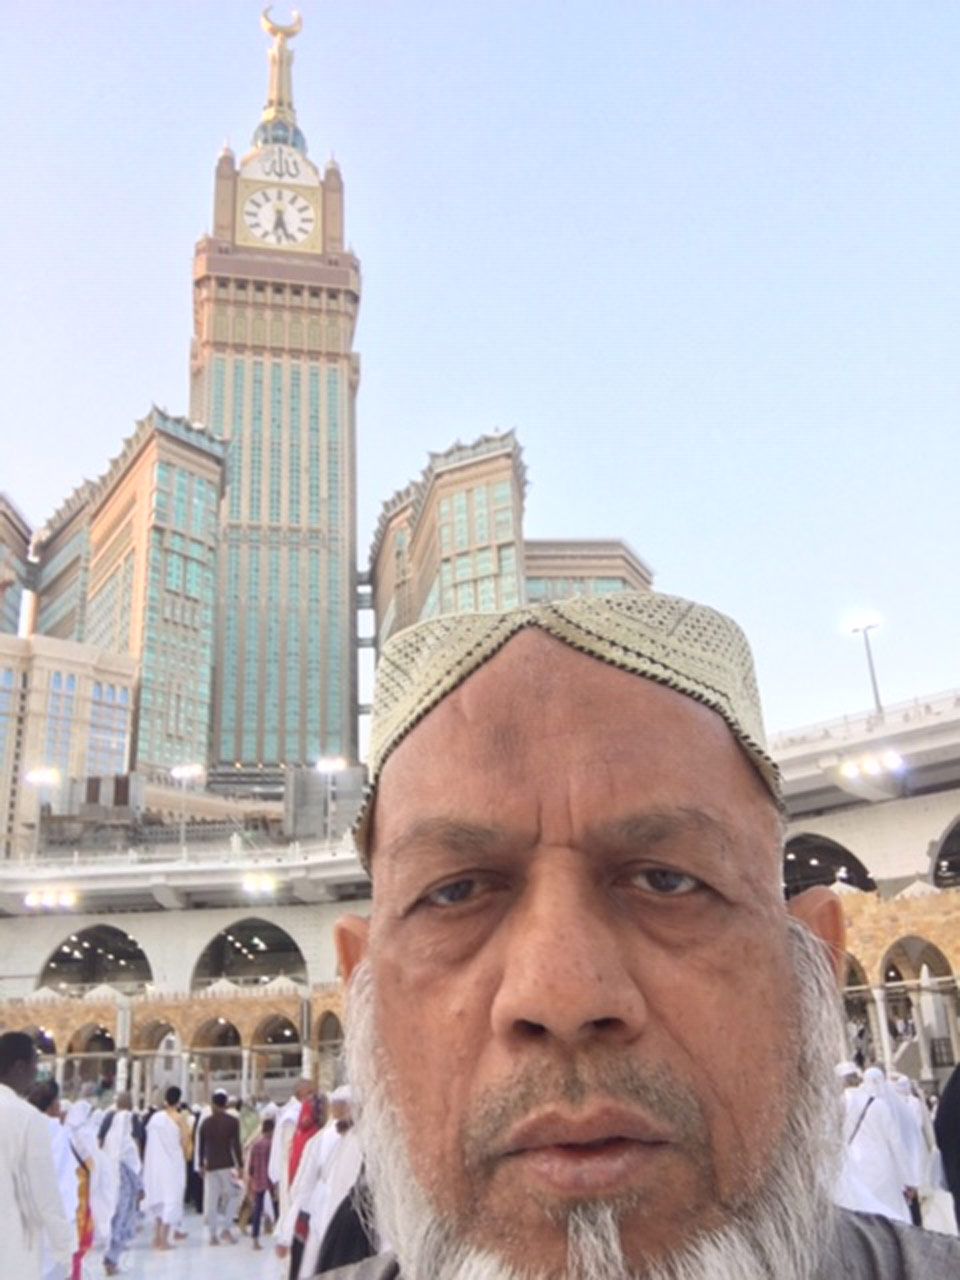 Engr Iqbal Khan is in Matab after Fajar while Clock Tower in Background